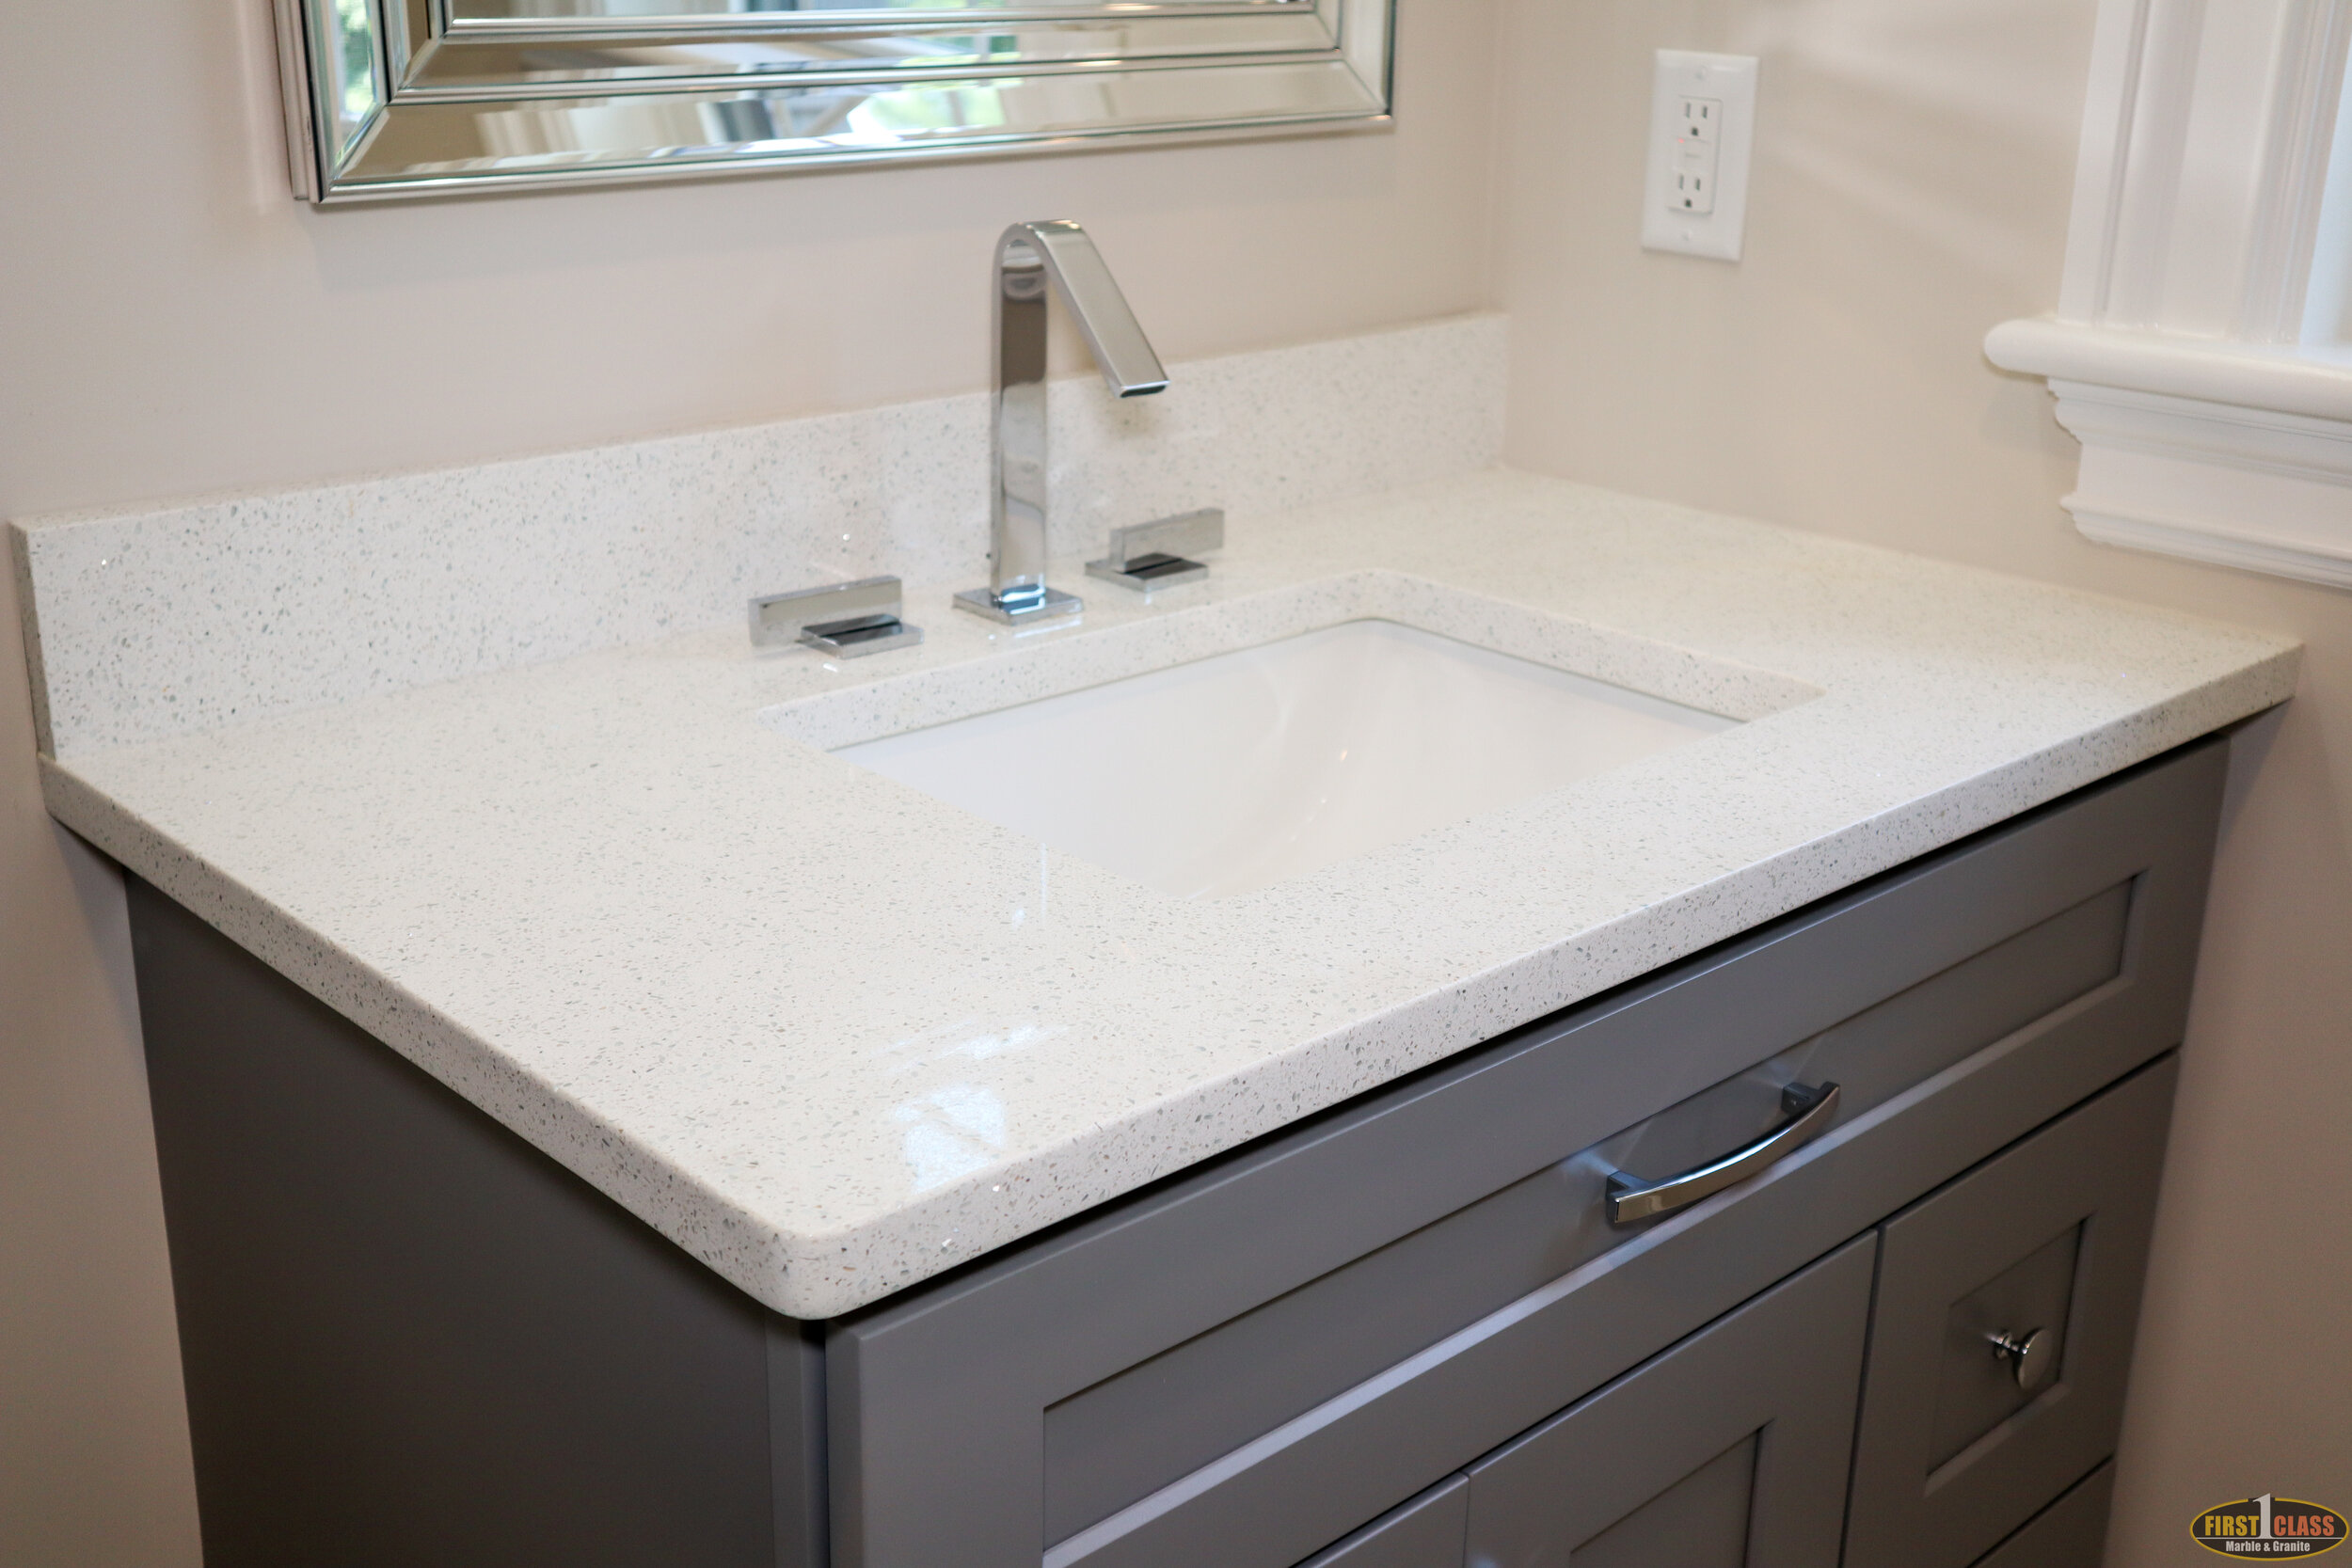 On-Suite Vanity  Material: Q-MSI Sparkling White  Thickness, Finish & Stone Type: 3CM Polished Quartz  Edge: Eased  Sink: KP-23 W